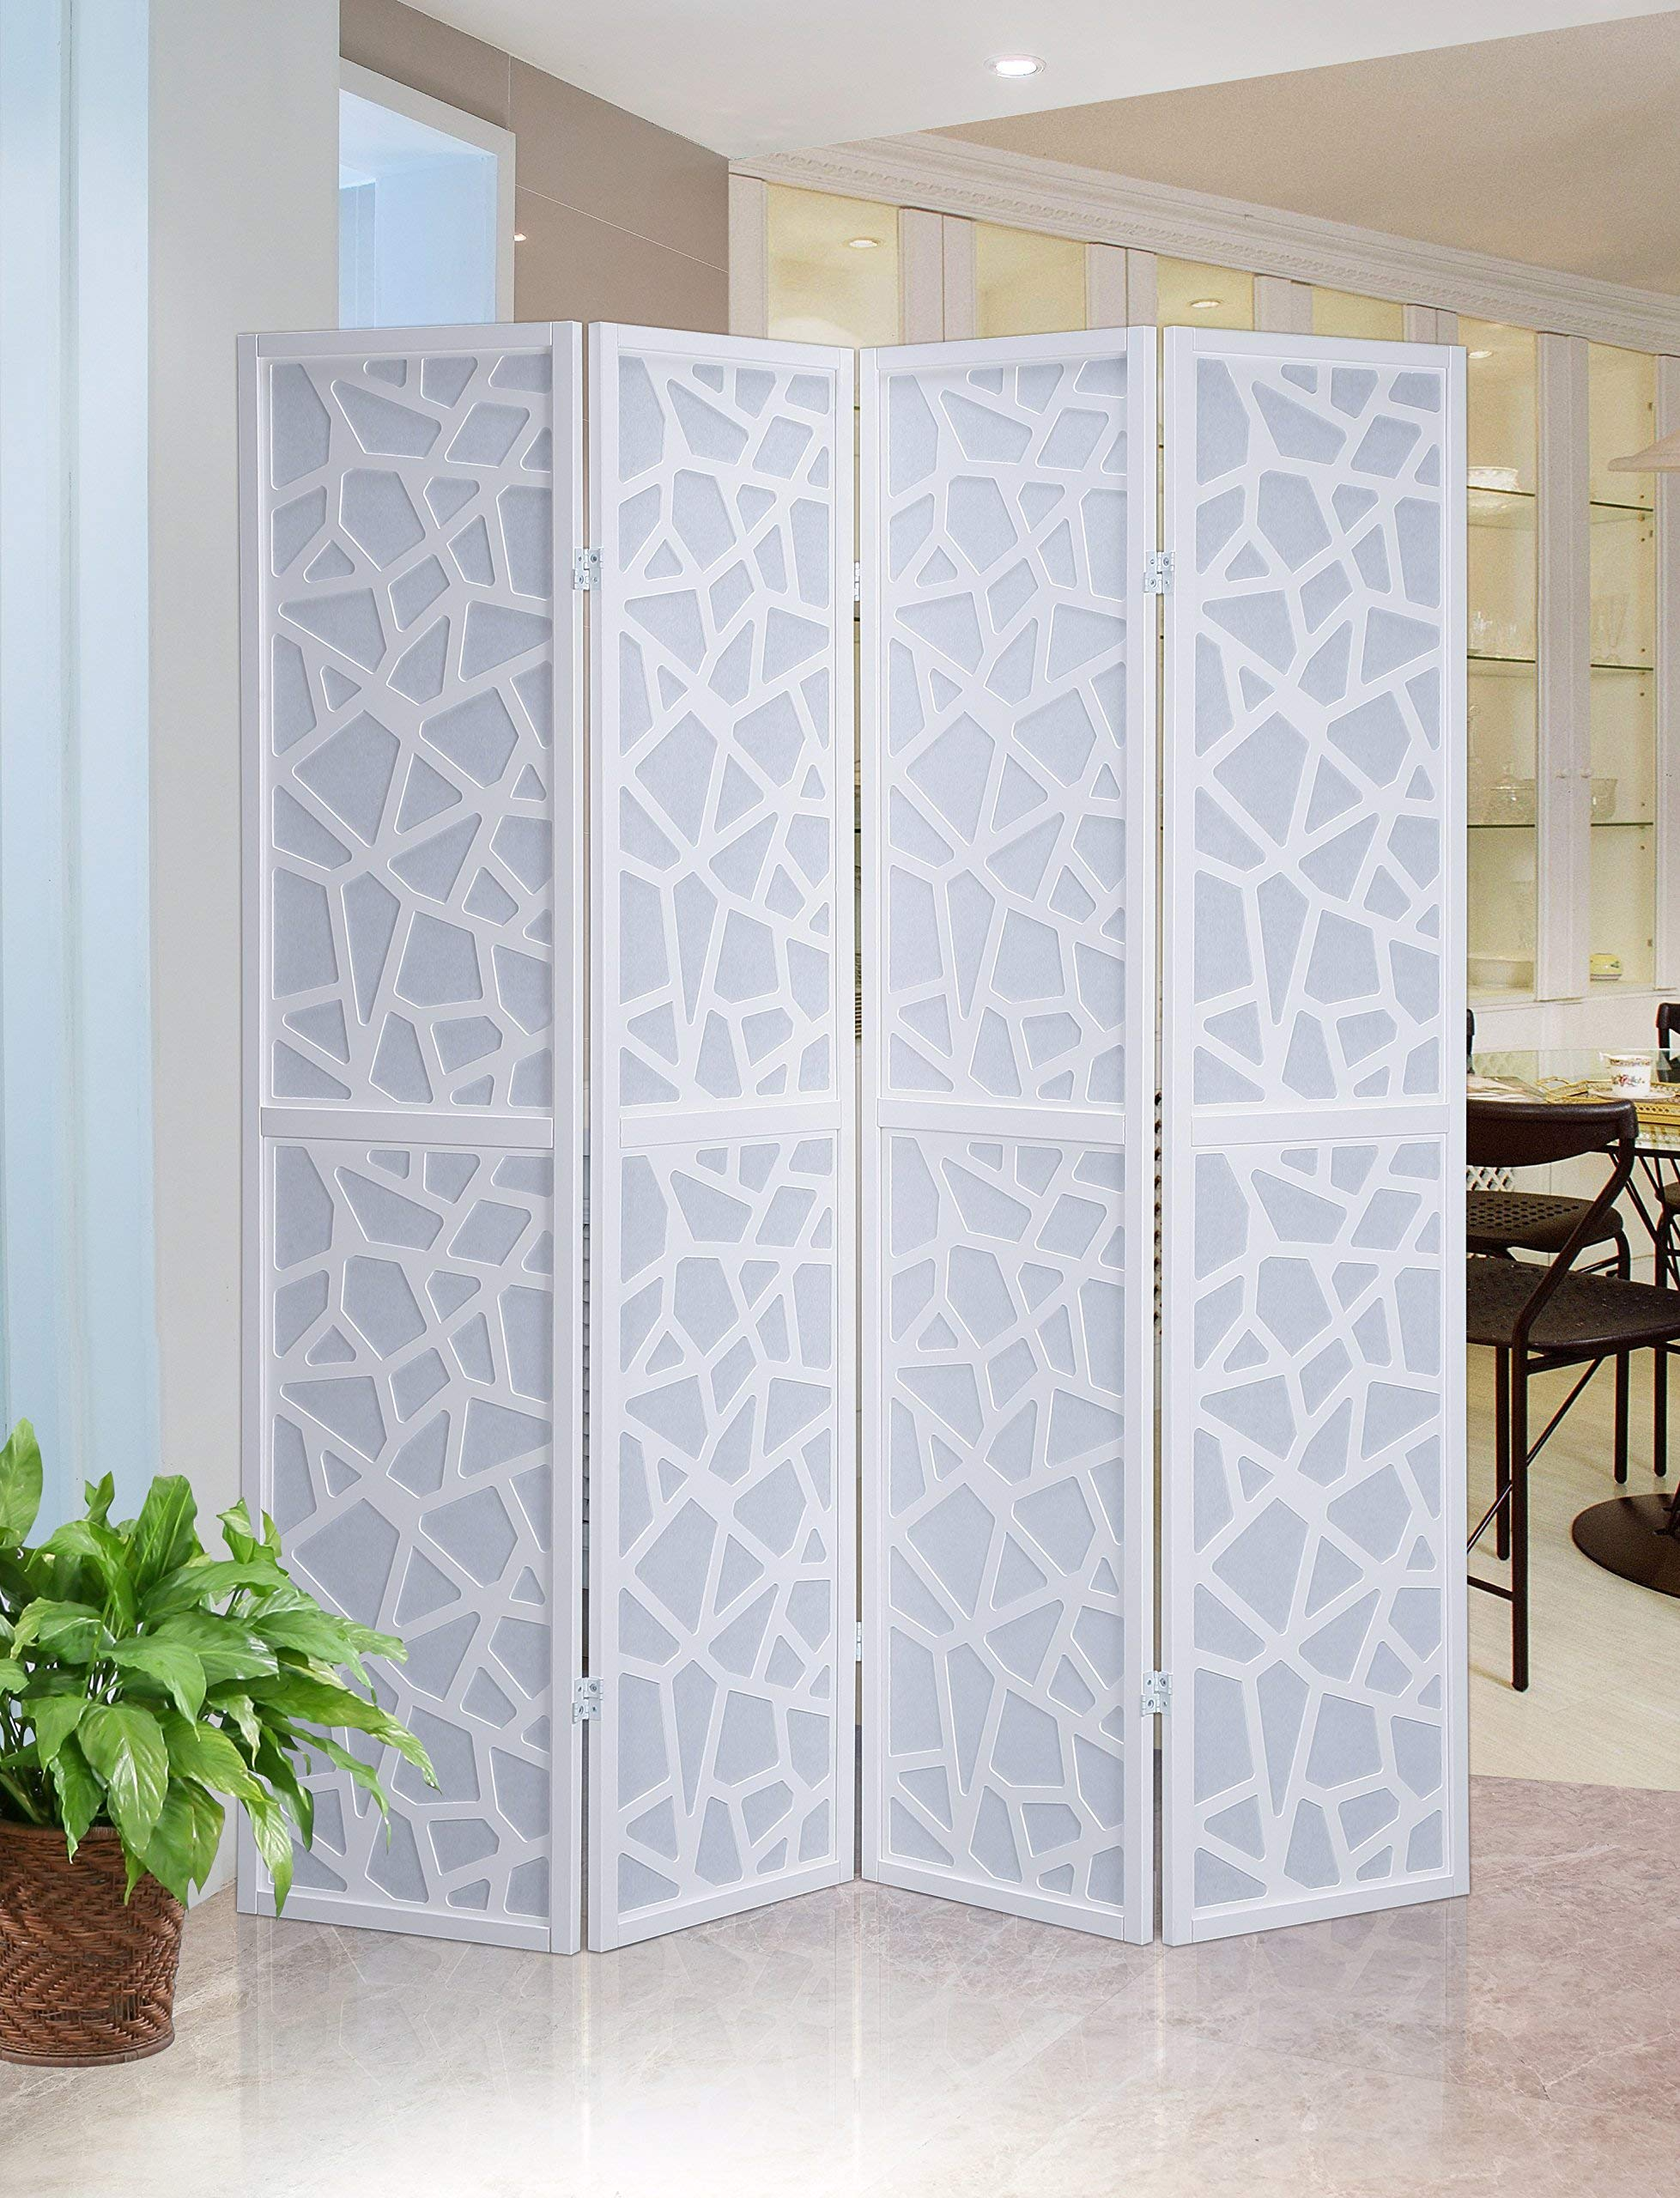 Roundhill Furniture Giyano 4 Panel Screen Room Divider, White by Roundhill Furniture